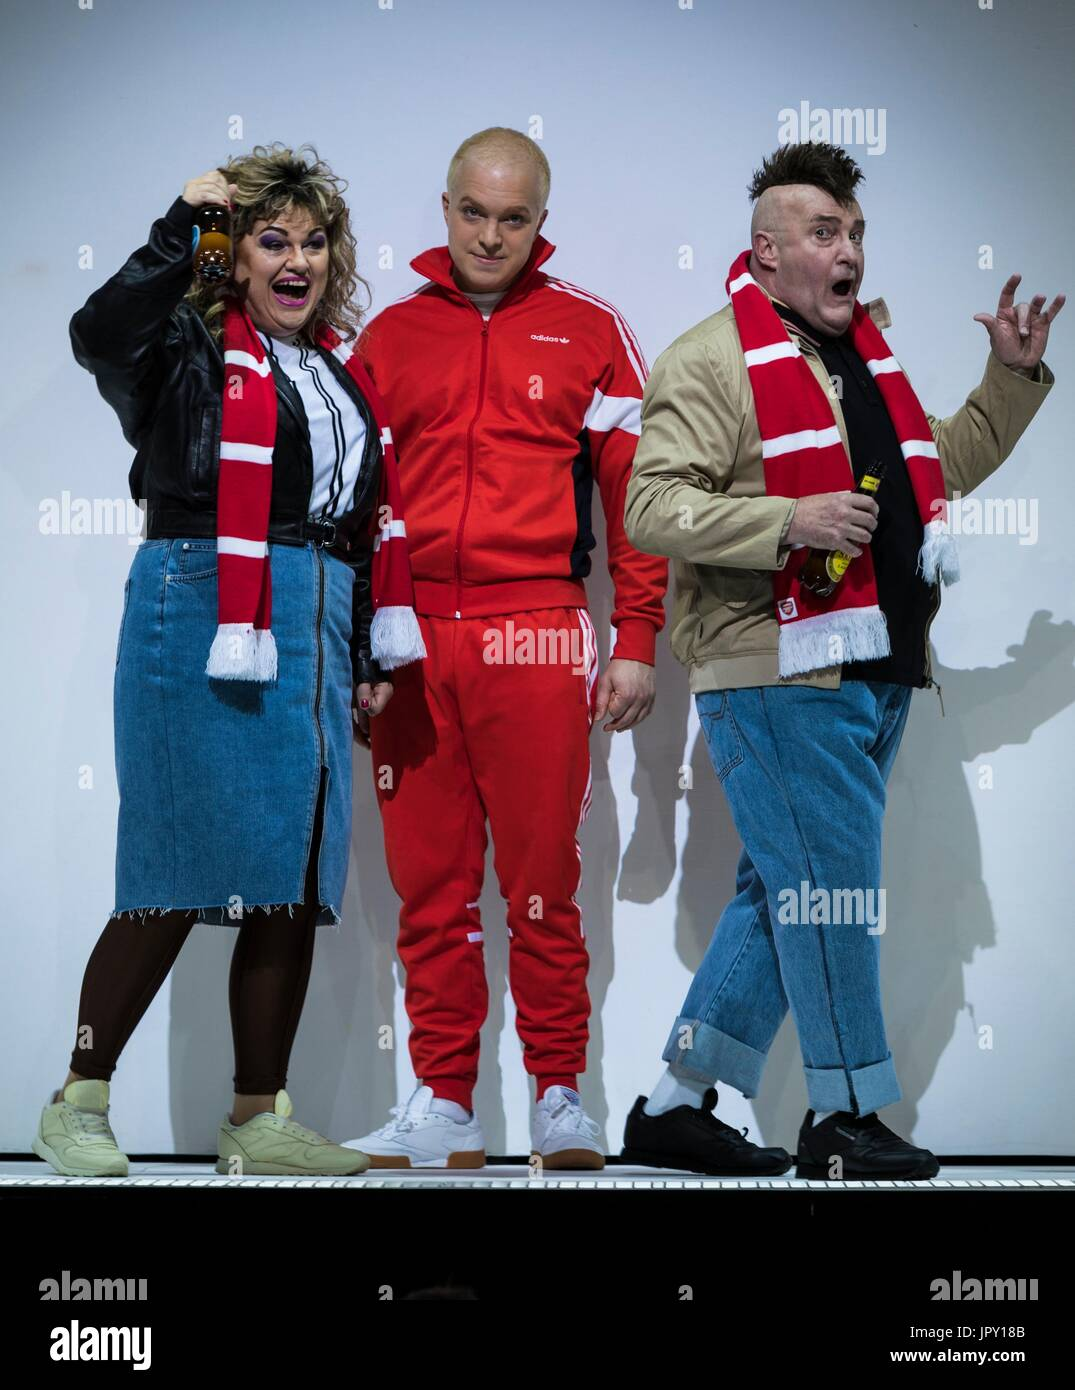 Edinburgh, UK. 02nd Aug, 2017. Edinburgh International Festival's Opera season opens with Mark-Anthony Turnage's Greek. The acclaimed young British baritone Alex Otterburn stars as anti-hero Eddy, alongside revered British singers Susan Bullock, Allison Cooke and Andrew Shore. Credit: Rich Dyson/Alamy Live News - Stock Image